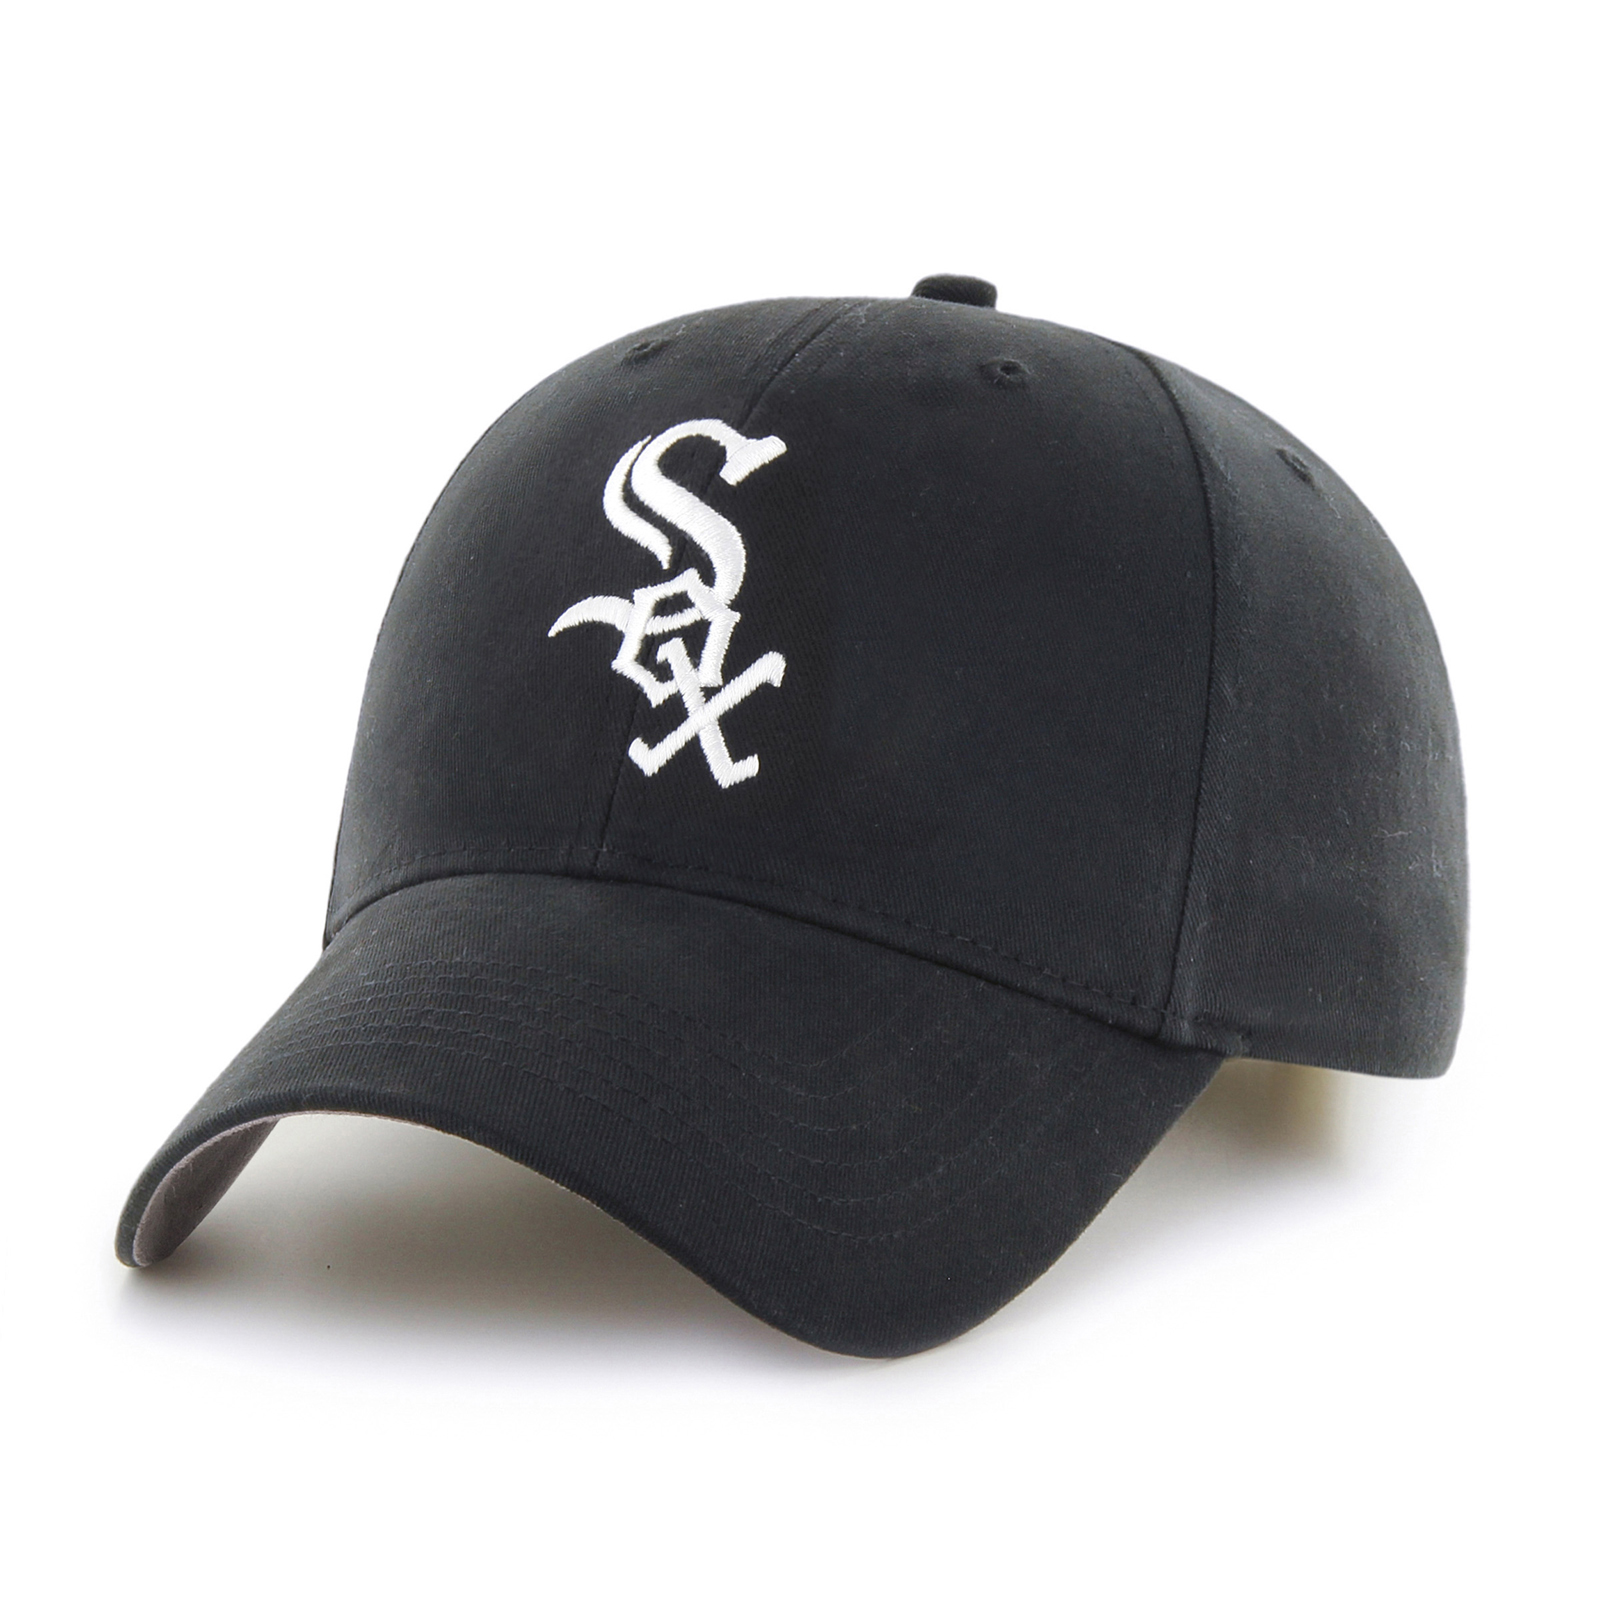 185d63c99 '47 Brand 47 Brand MLB Fan Favorite Chicago White Sox Basic Cap, Size: One  size. '